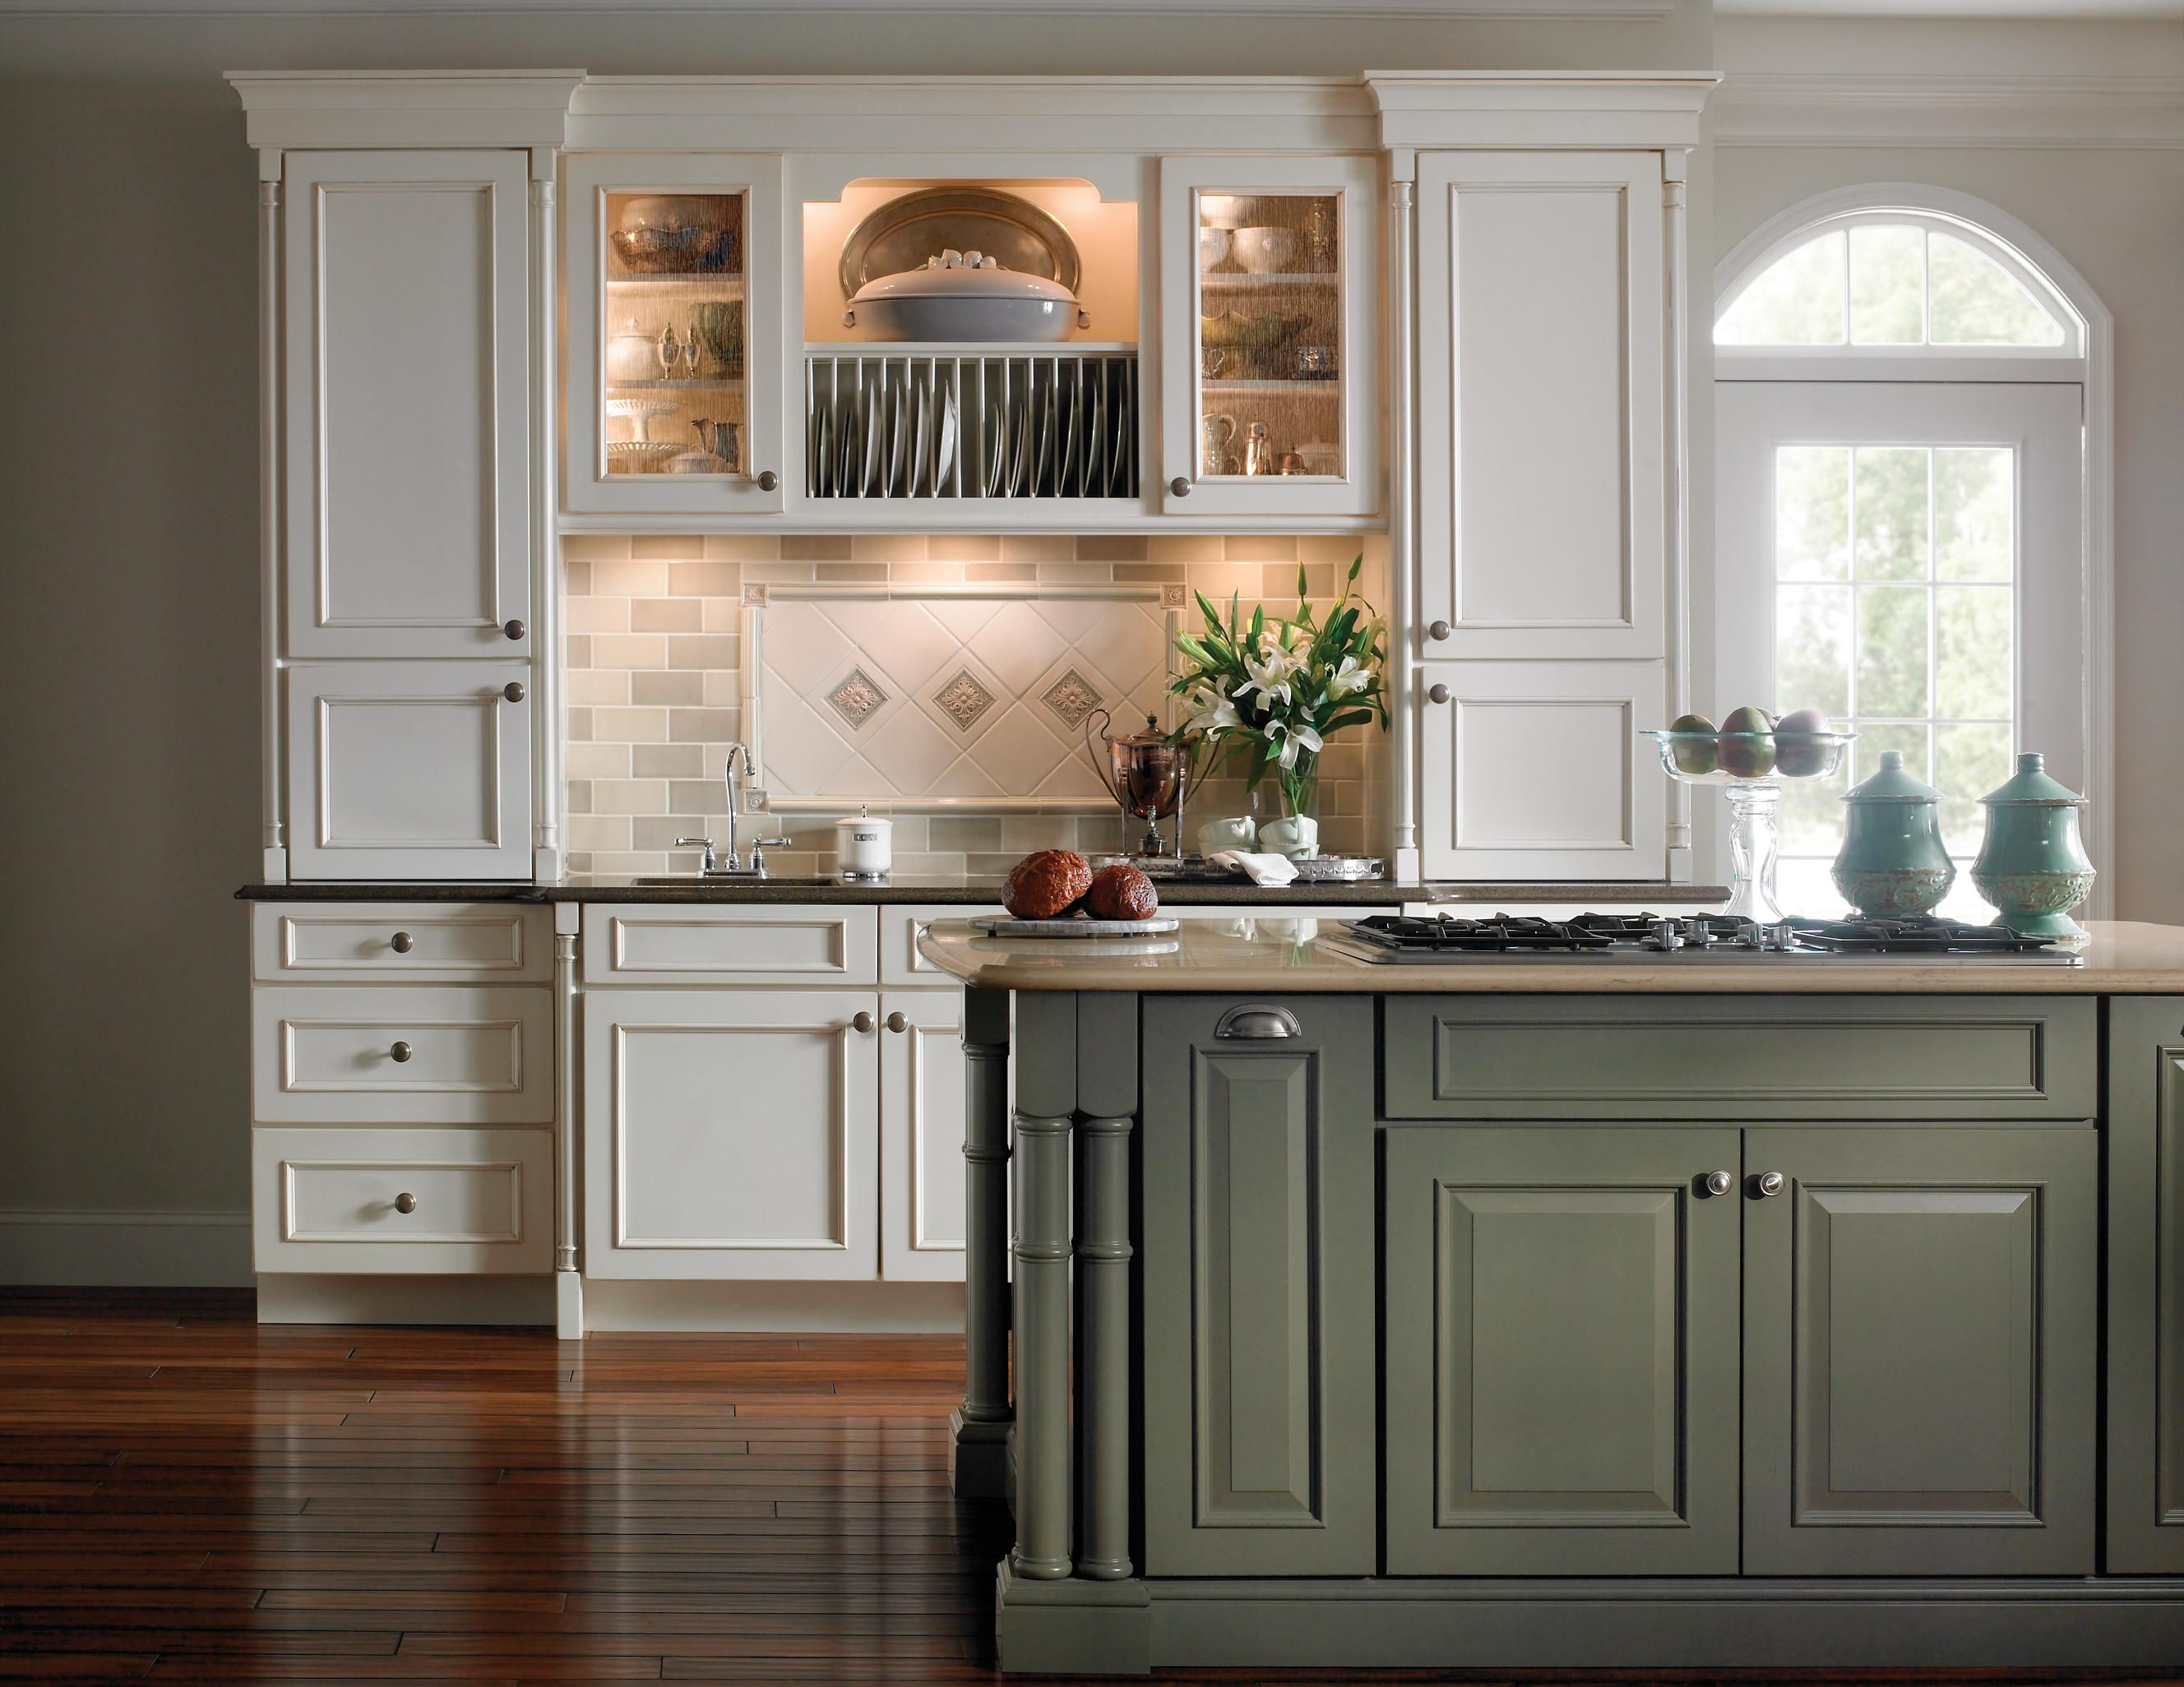 Yorktowne Cabinets Dixon Schuler Cabinets Kitchen Cabinets Traditional Kitchen Design